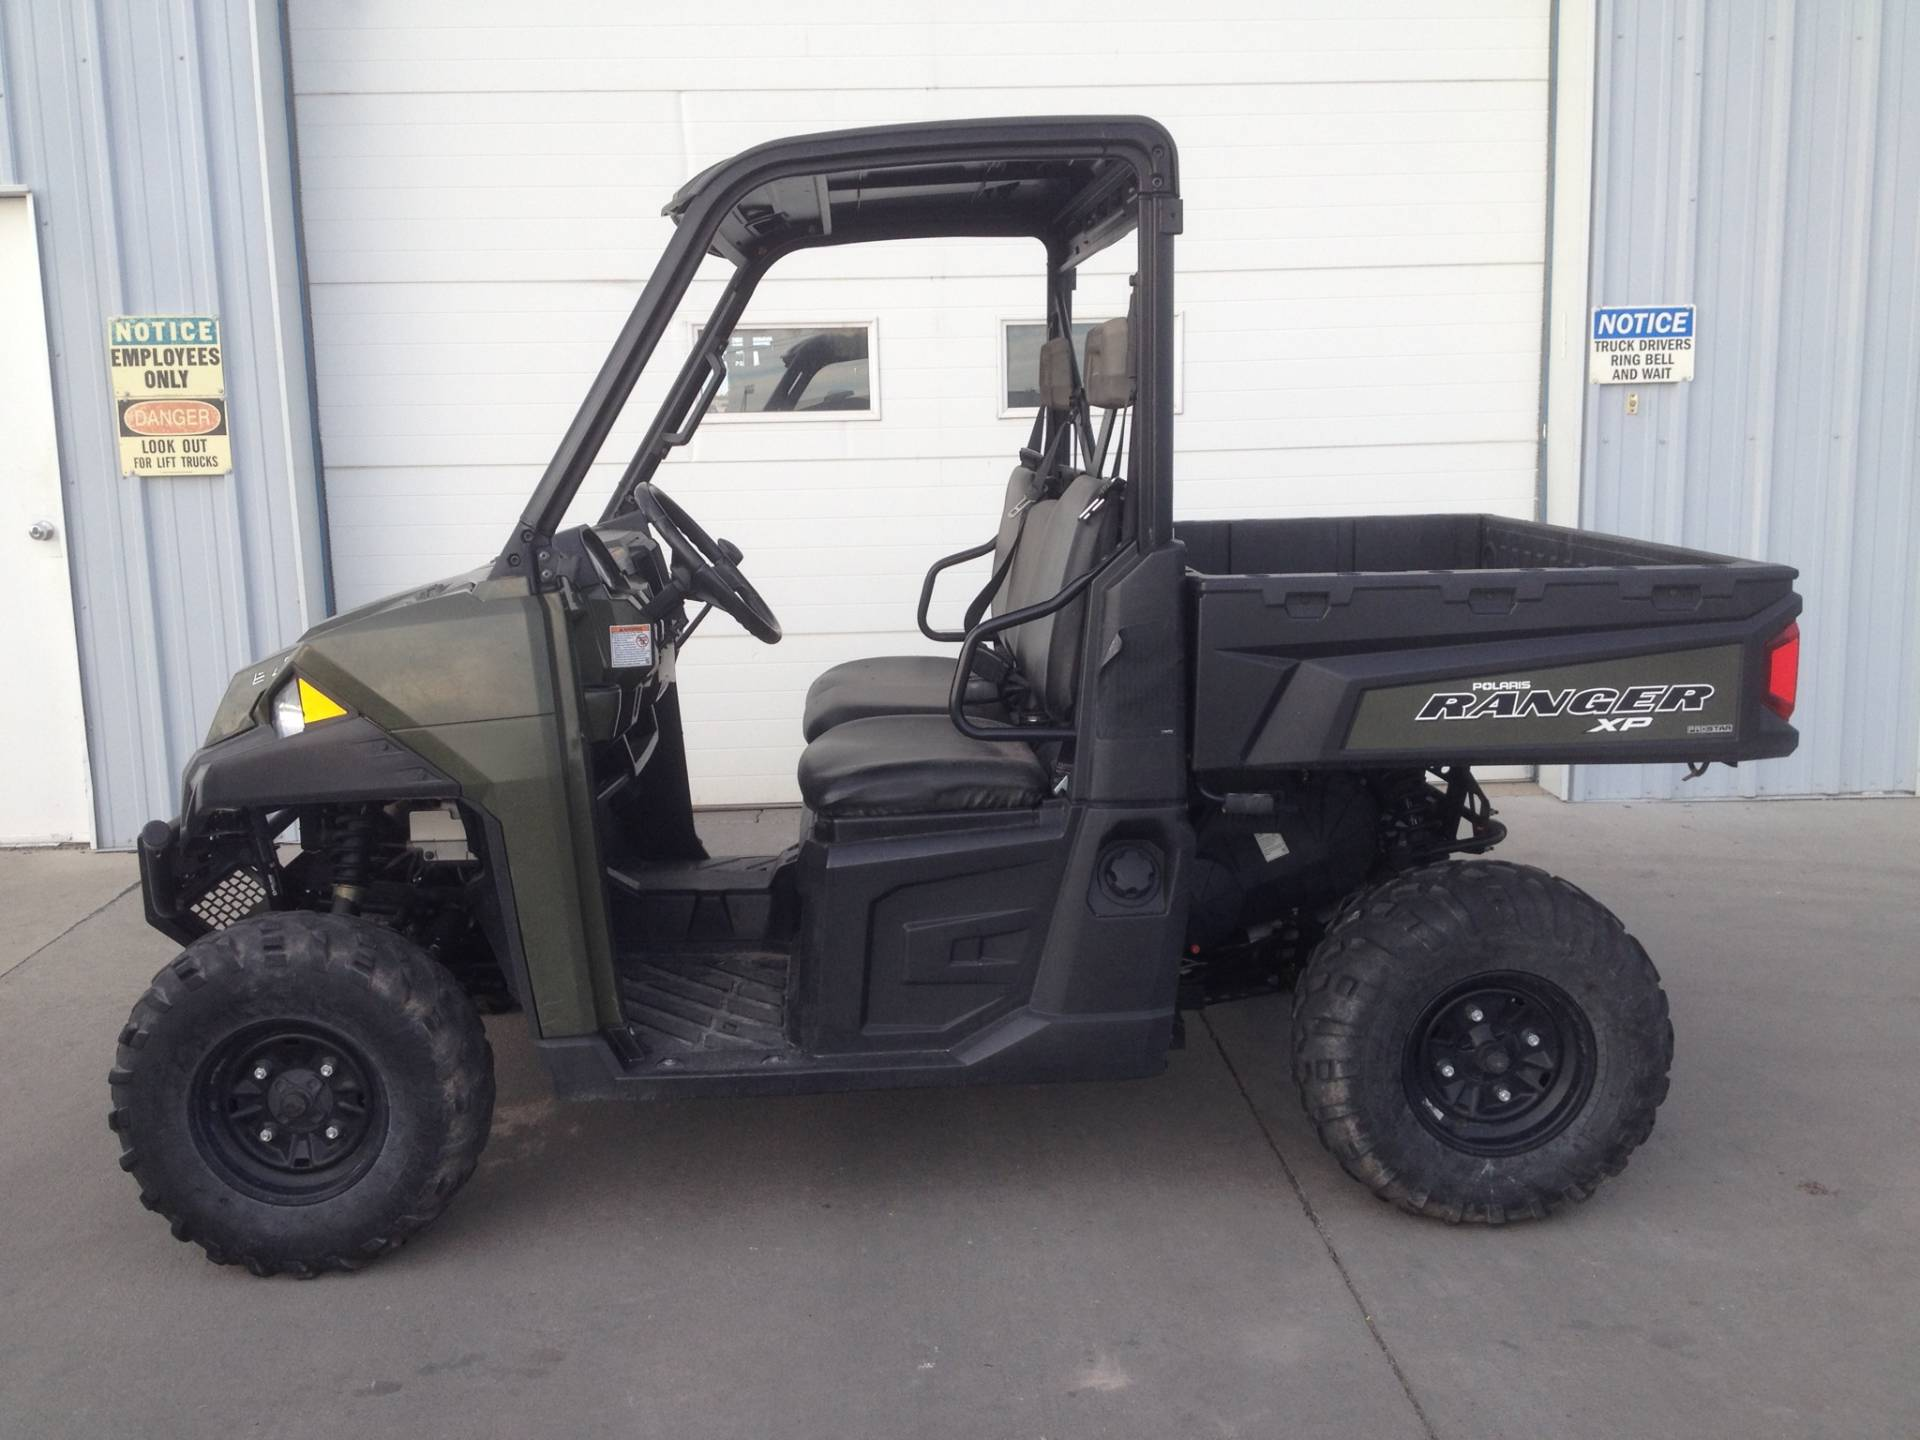 2016 Polaris Ranger XP 570 in Scottsbluff, Nebraska - Photo 1